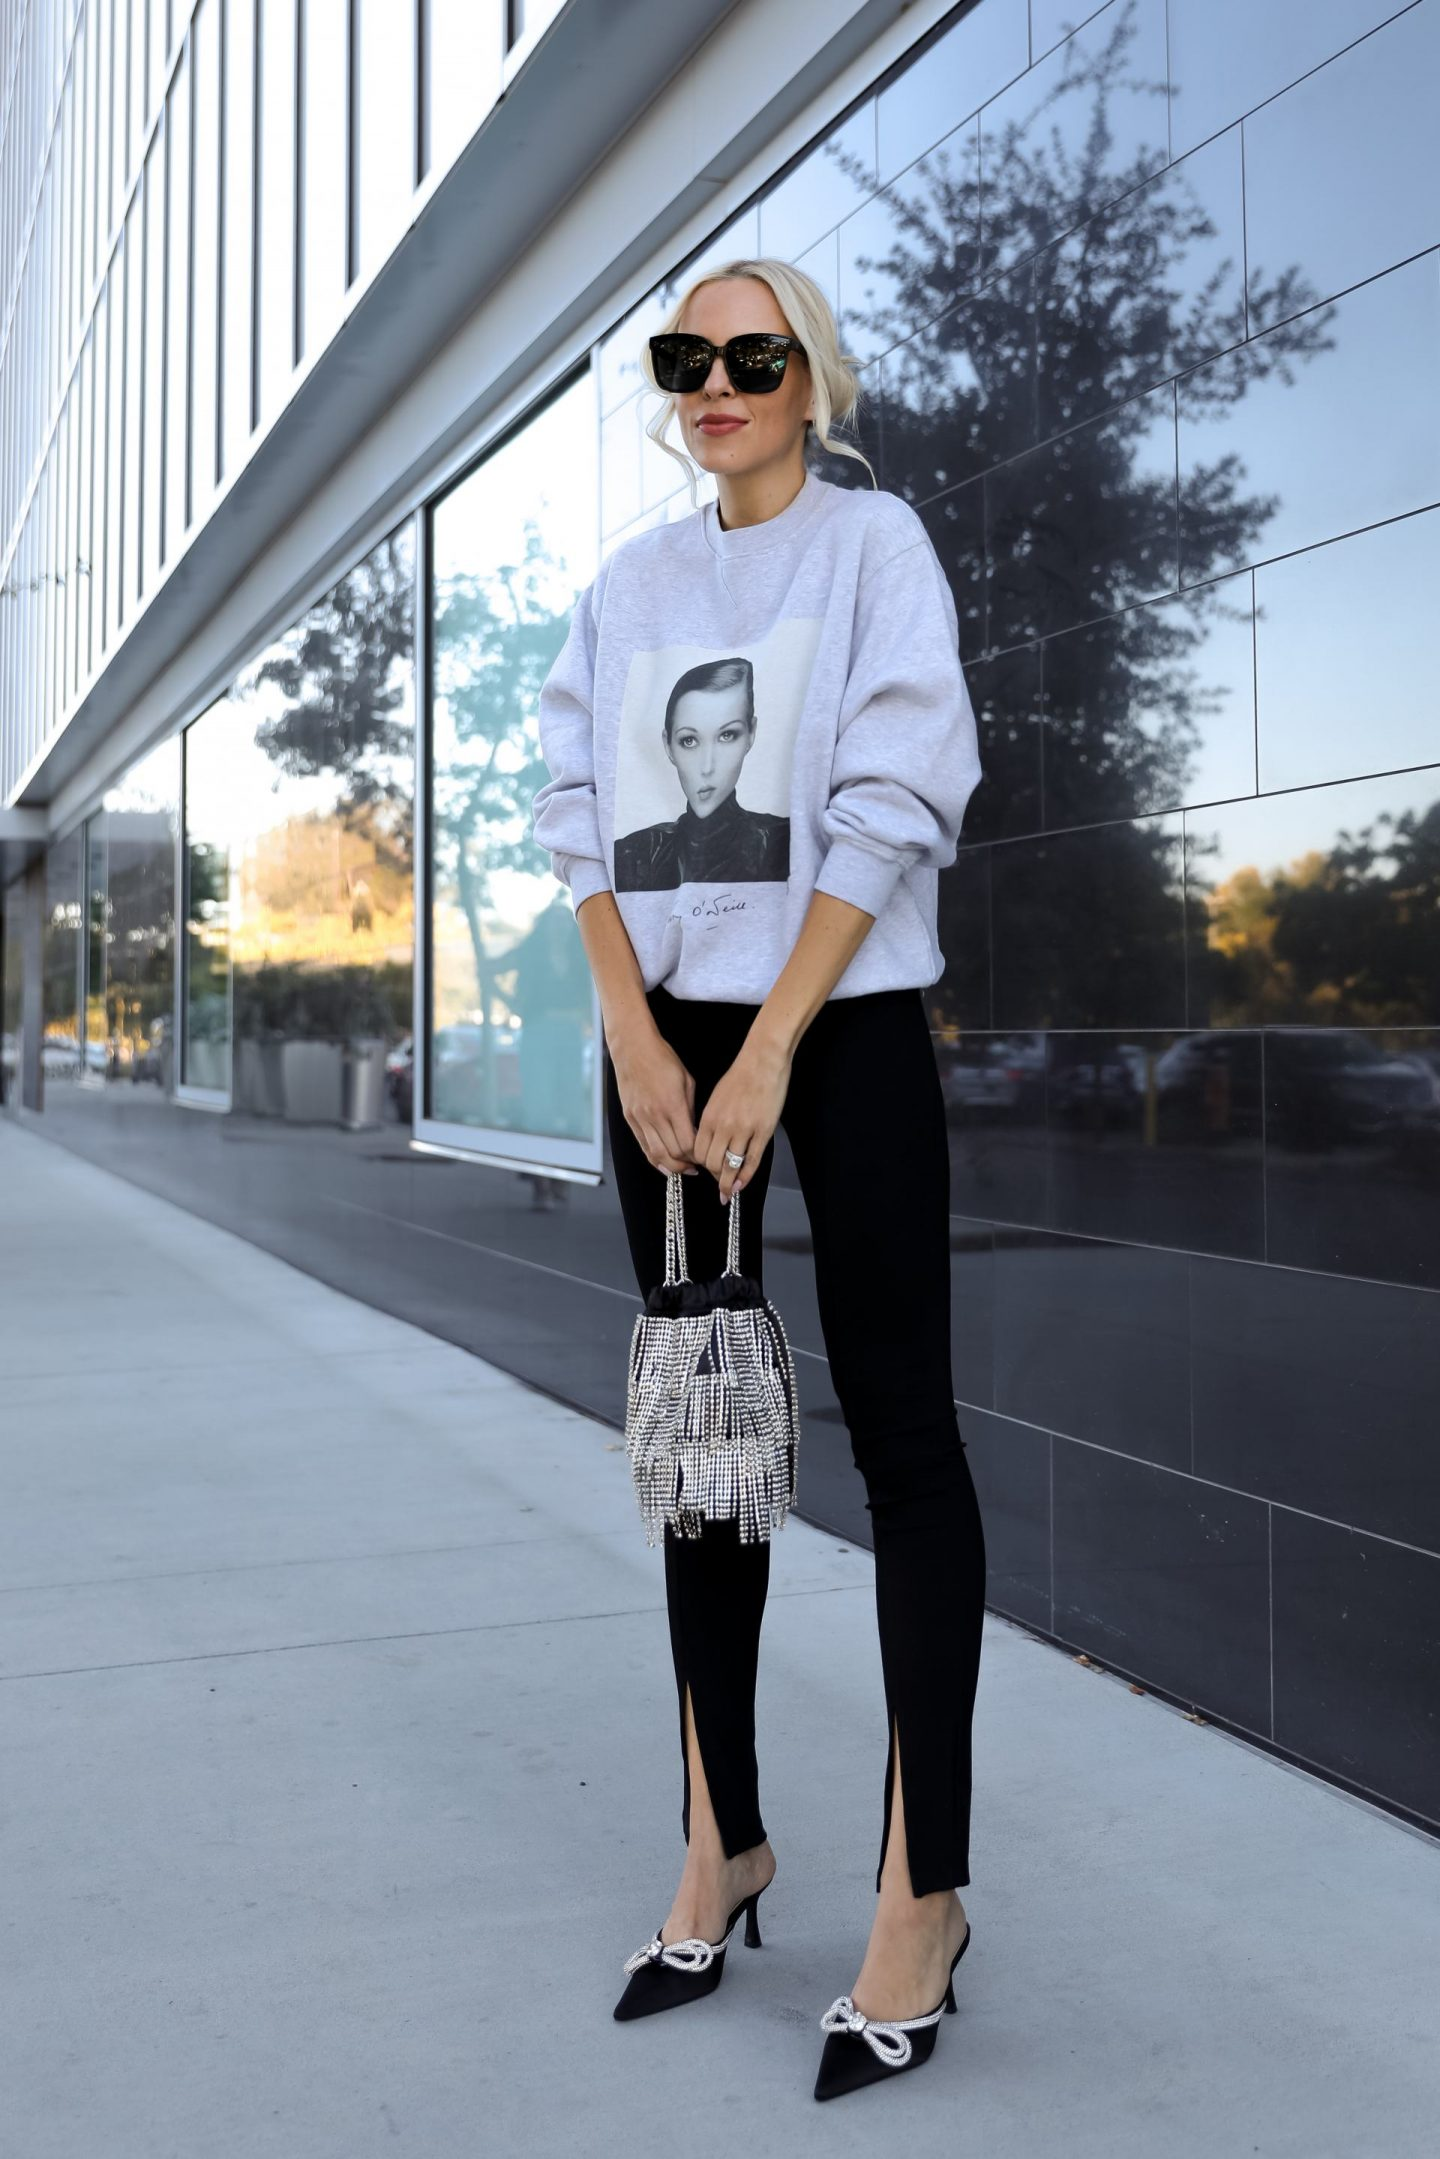 Casual glam style, Anine Bing Ramona Sweatshirt AB X TO Kate sweatshirt with H&M slit detail black leggings and satin embellished double bow rhinestone mules from Outdazl. Fall style, by Veronica Levy of Lombard & Fifth.